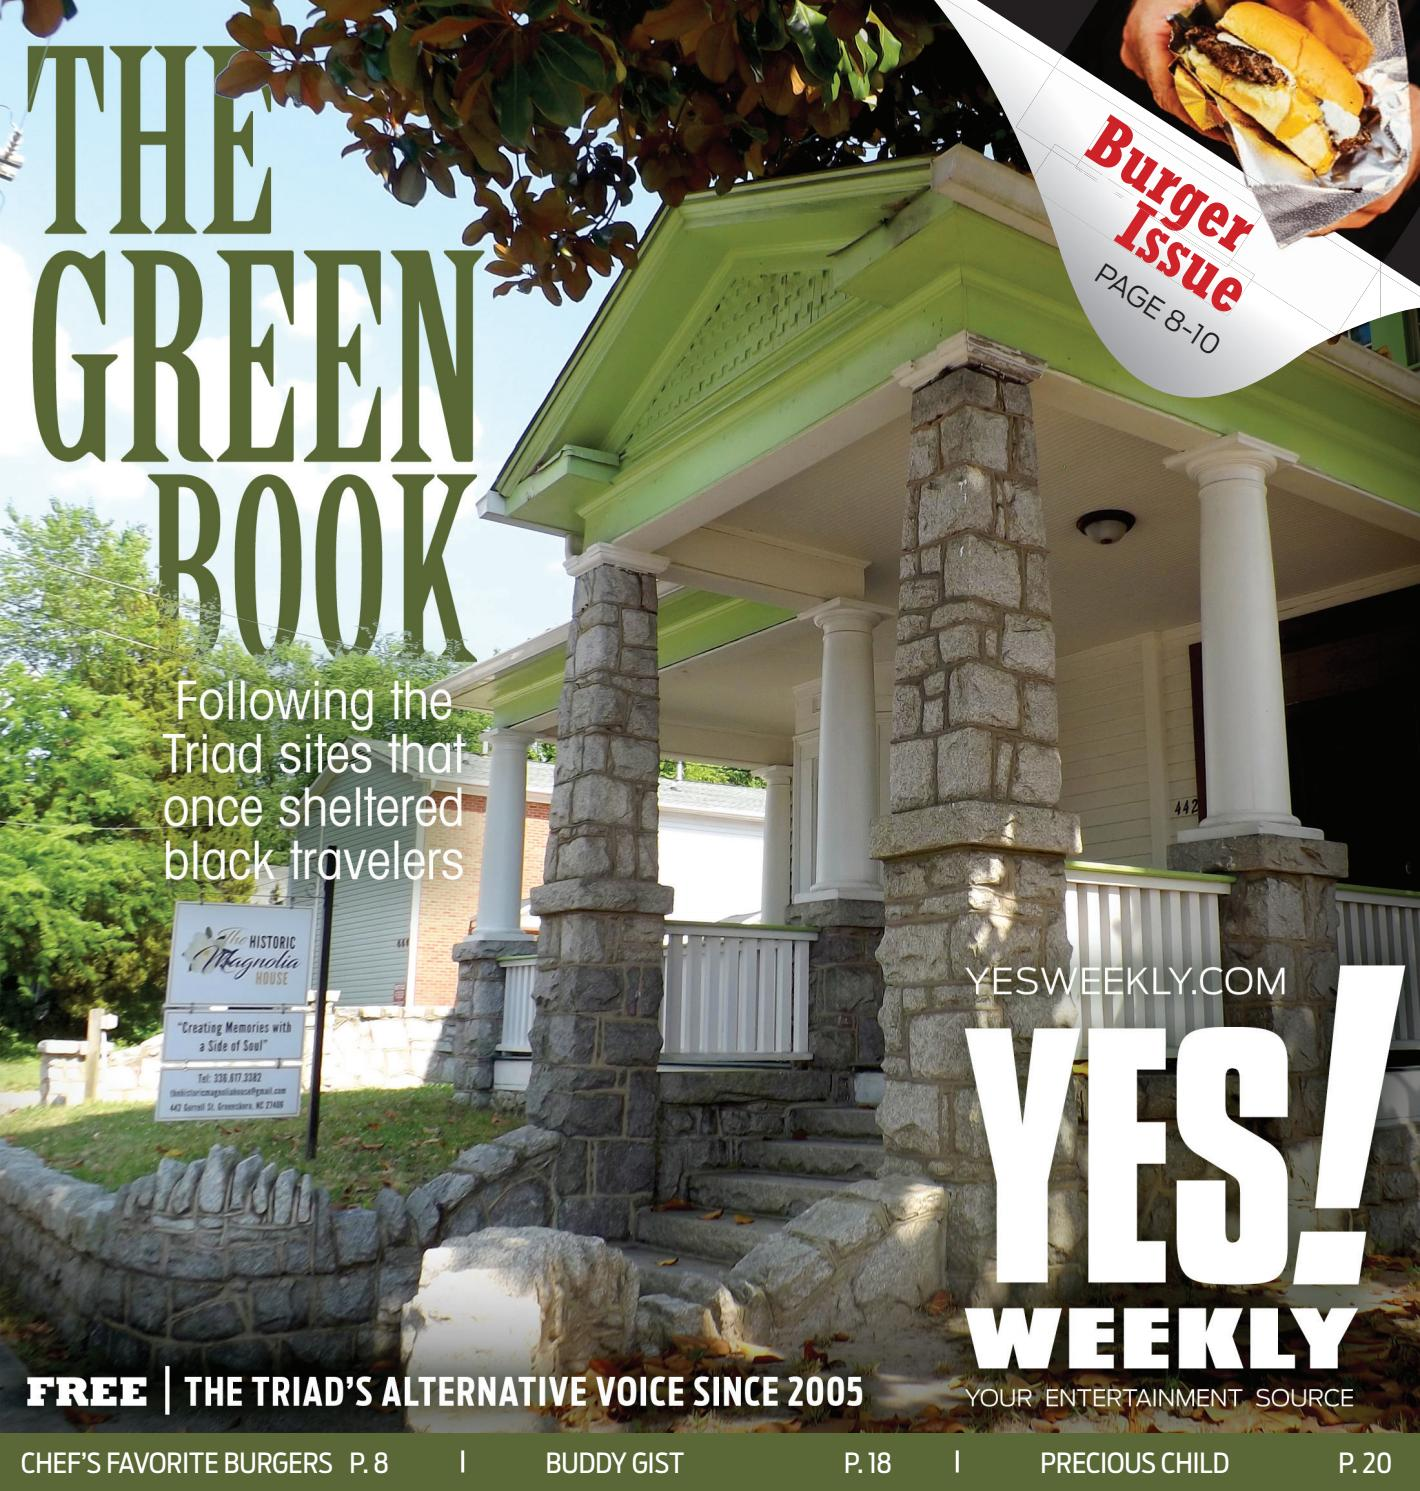 YES! Weekly - May 29, 2019 by YES! Weekly - issuu